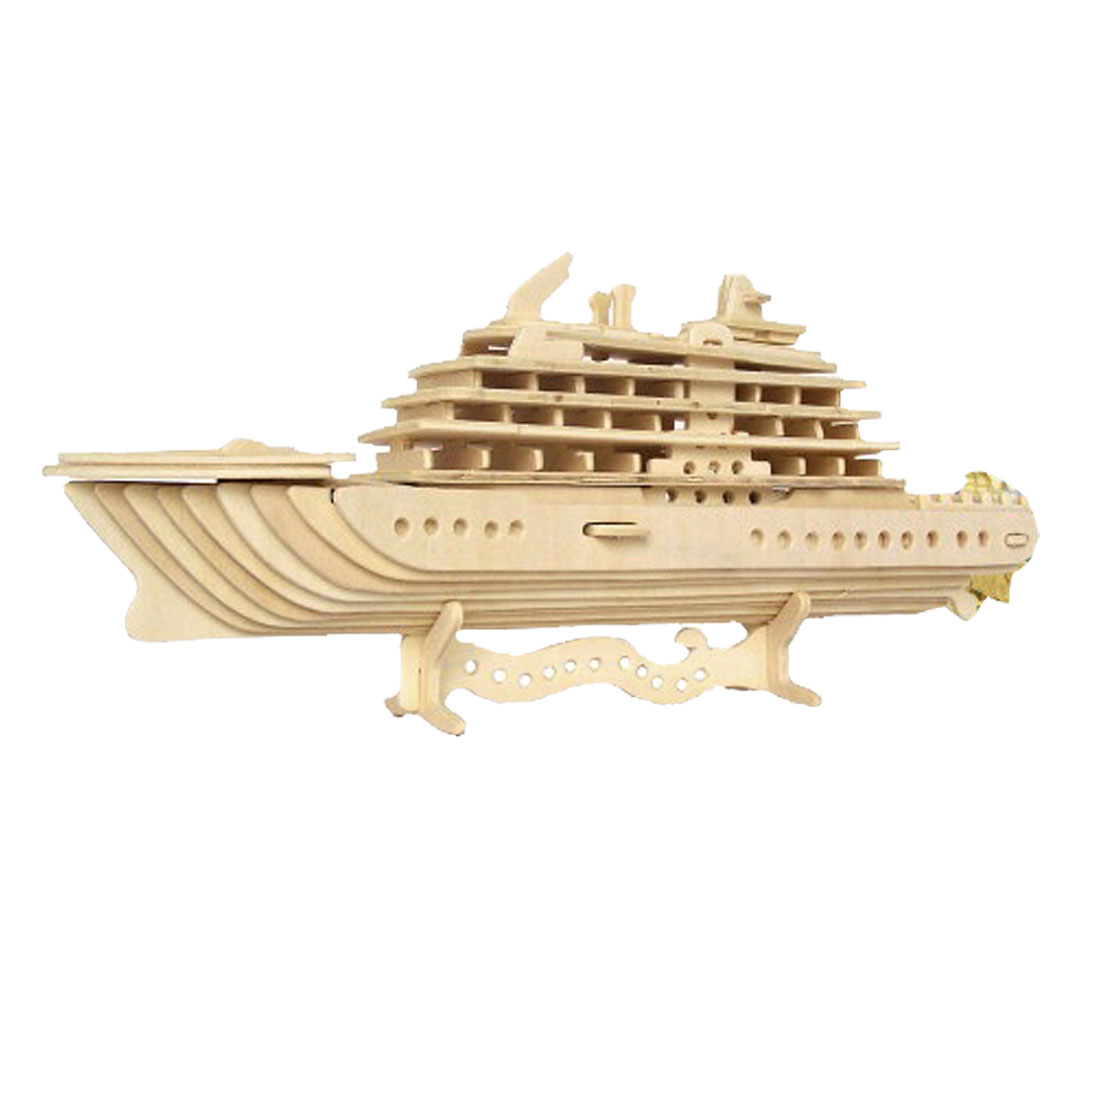 Assemble-Luxury-Yacht-Model-DIY-Puzzle-Wood-Construction-Kit-Gift-Zilqz